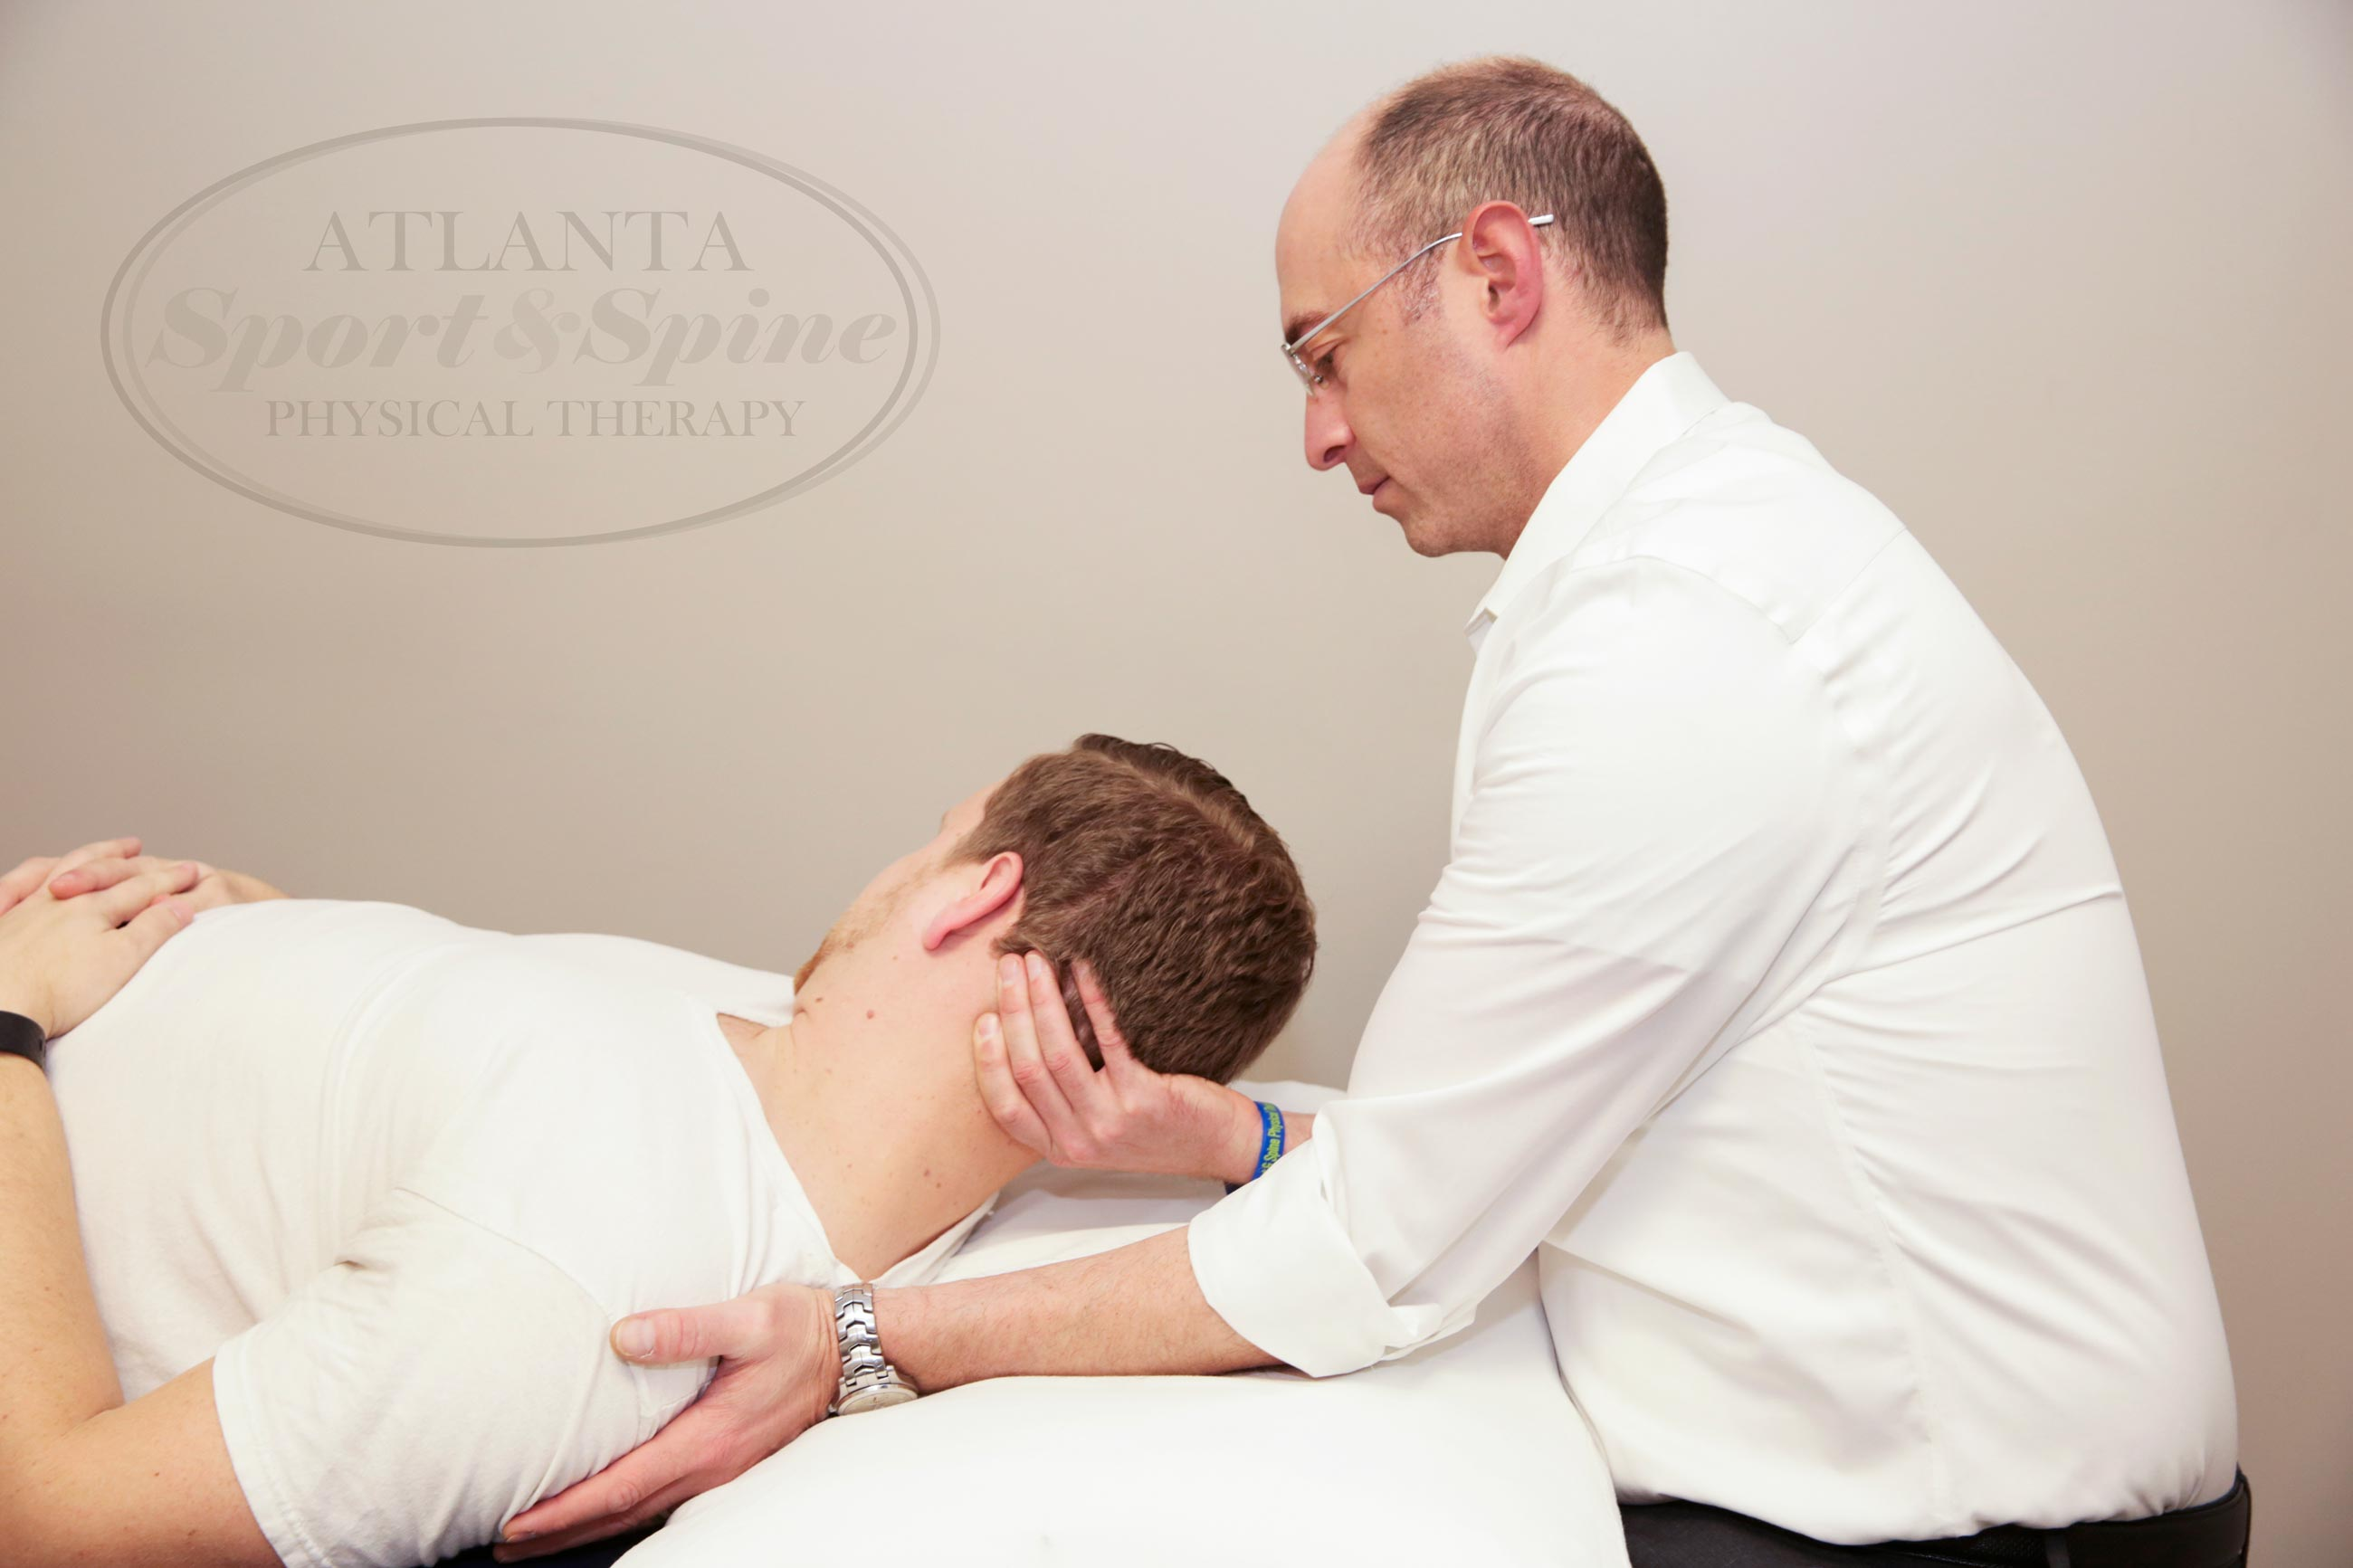 physical therapy will help any muscular discomfort